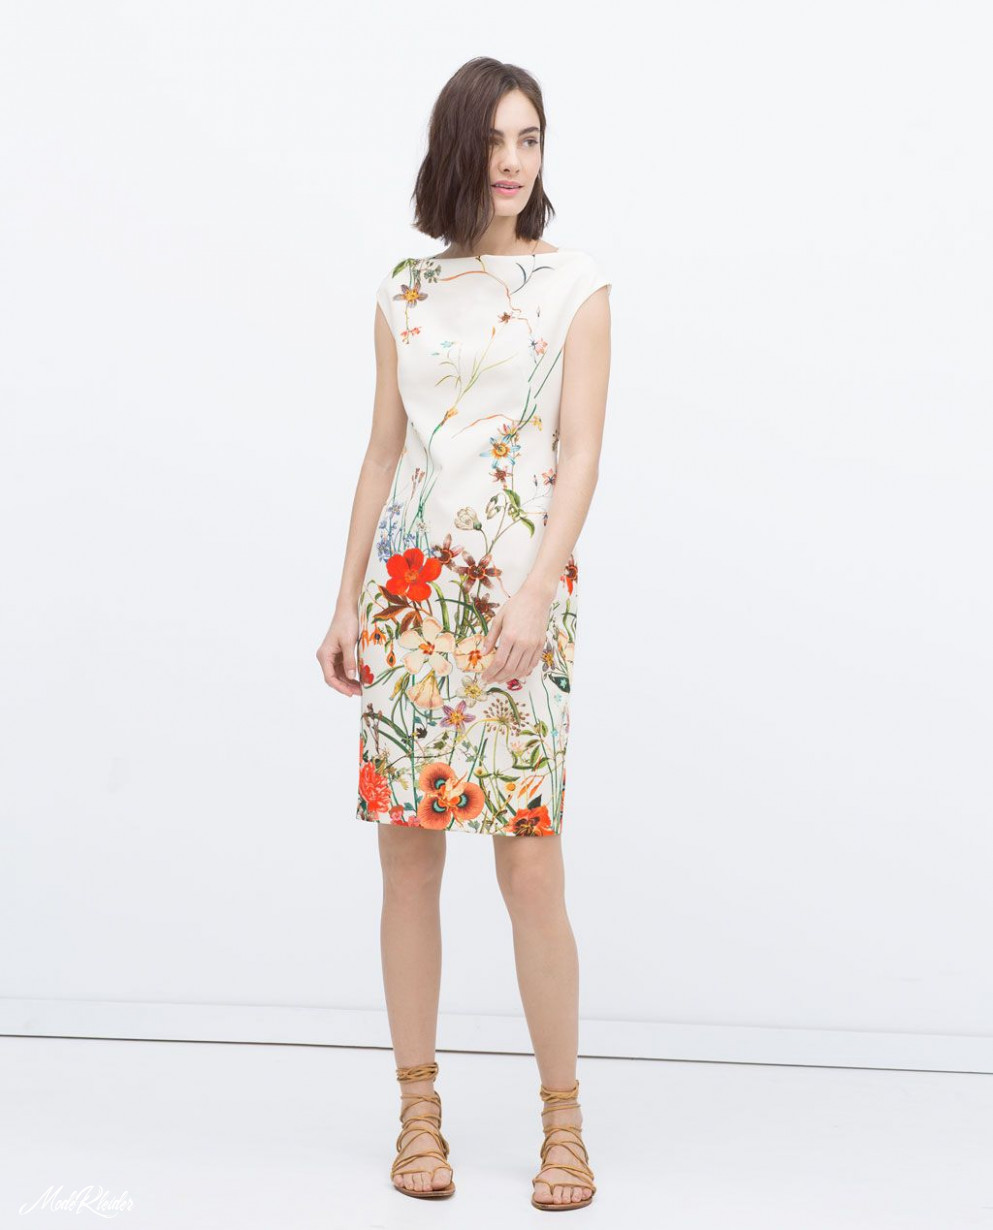 FLORAL PRINTED TUBE DRESS - Midi - Dresses - WOMAN  Zara floral